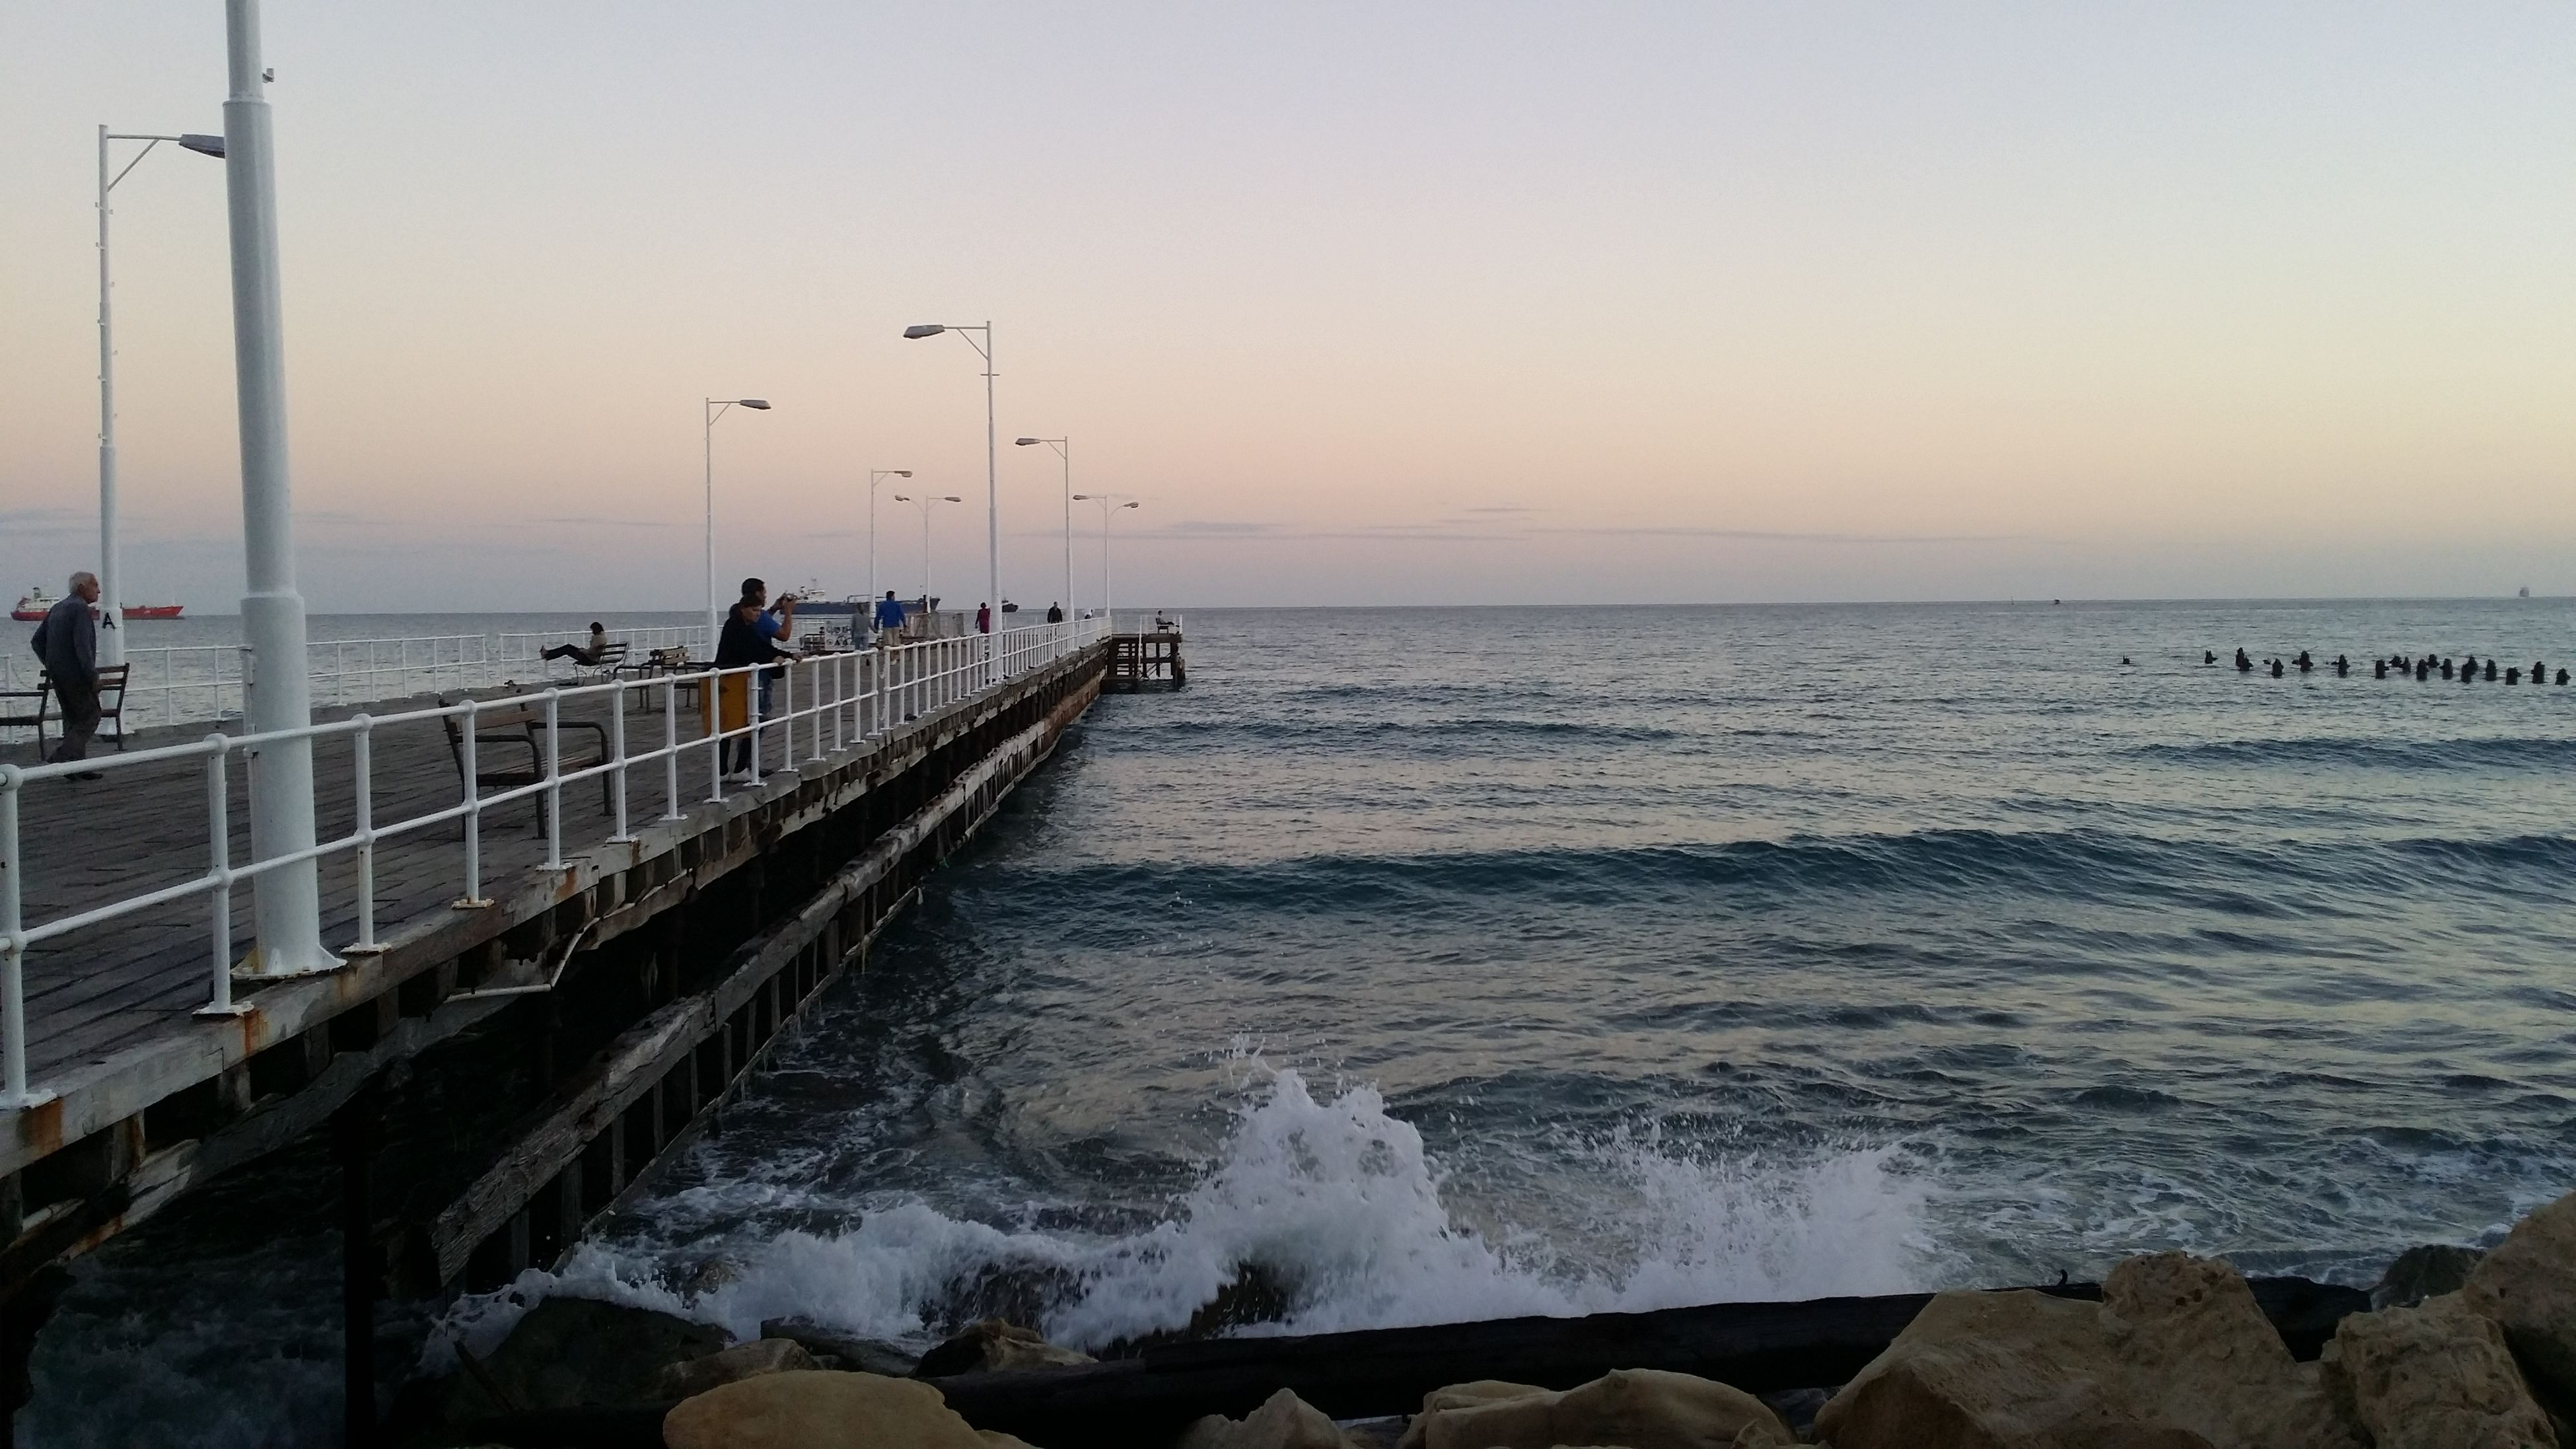 sea, water, horizon over water, scenics, tranquil scene, beauty in nature, pier, tranquility, wave, sky, nature, railing, beach, sunset, clear sky, idyllic, copy space, shore, surf, remote